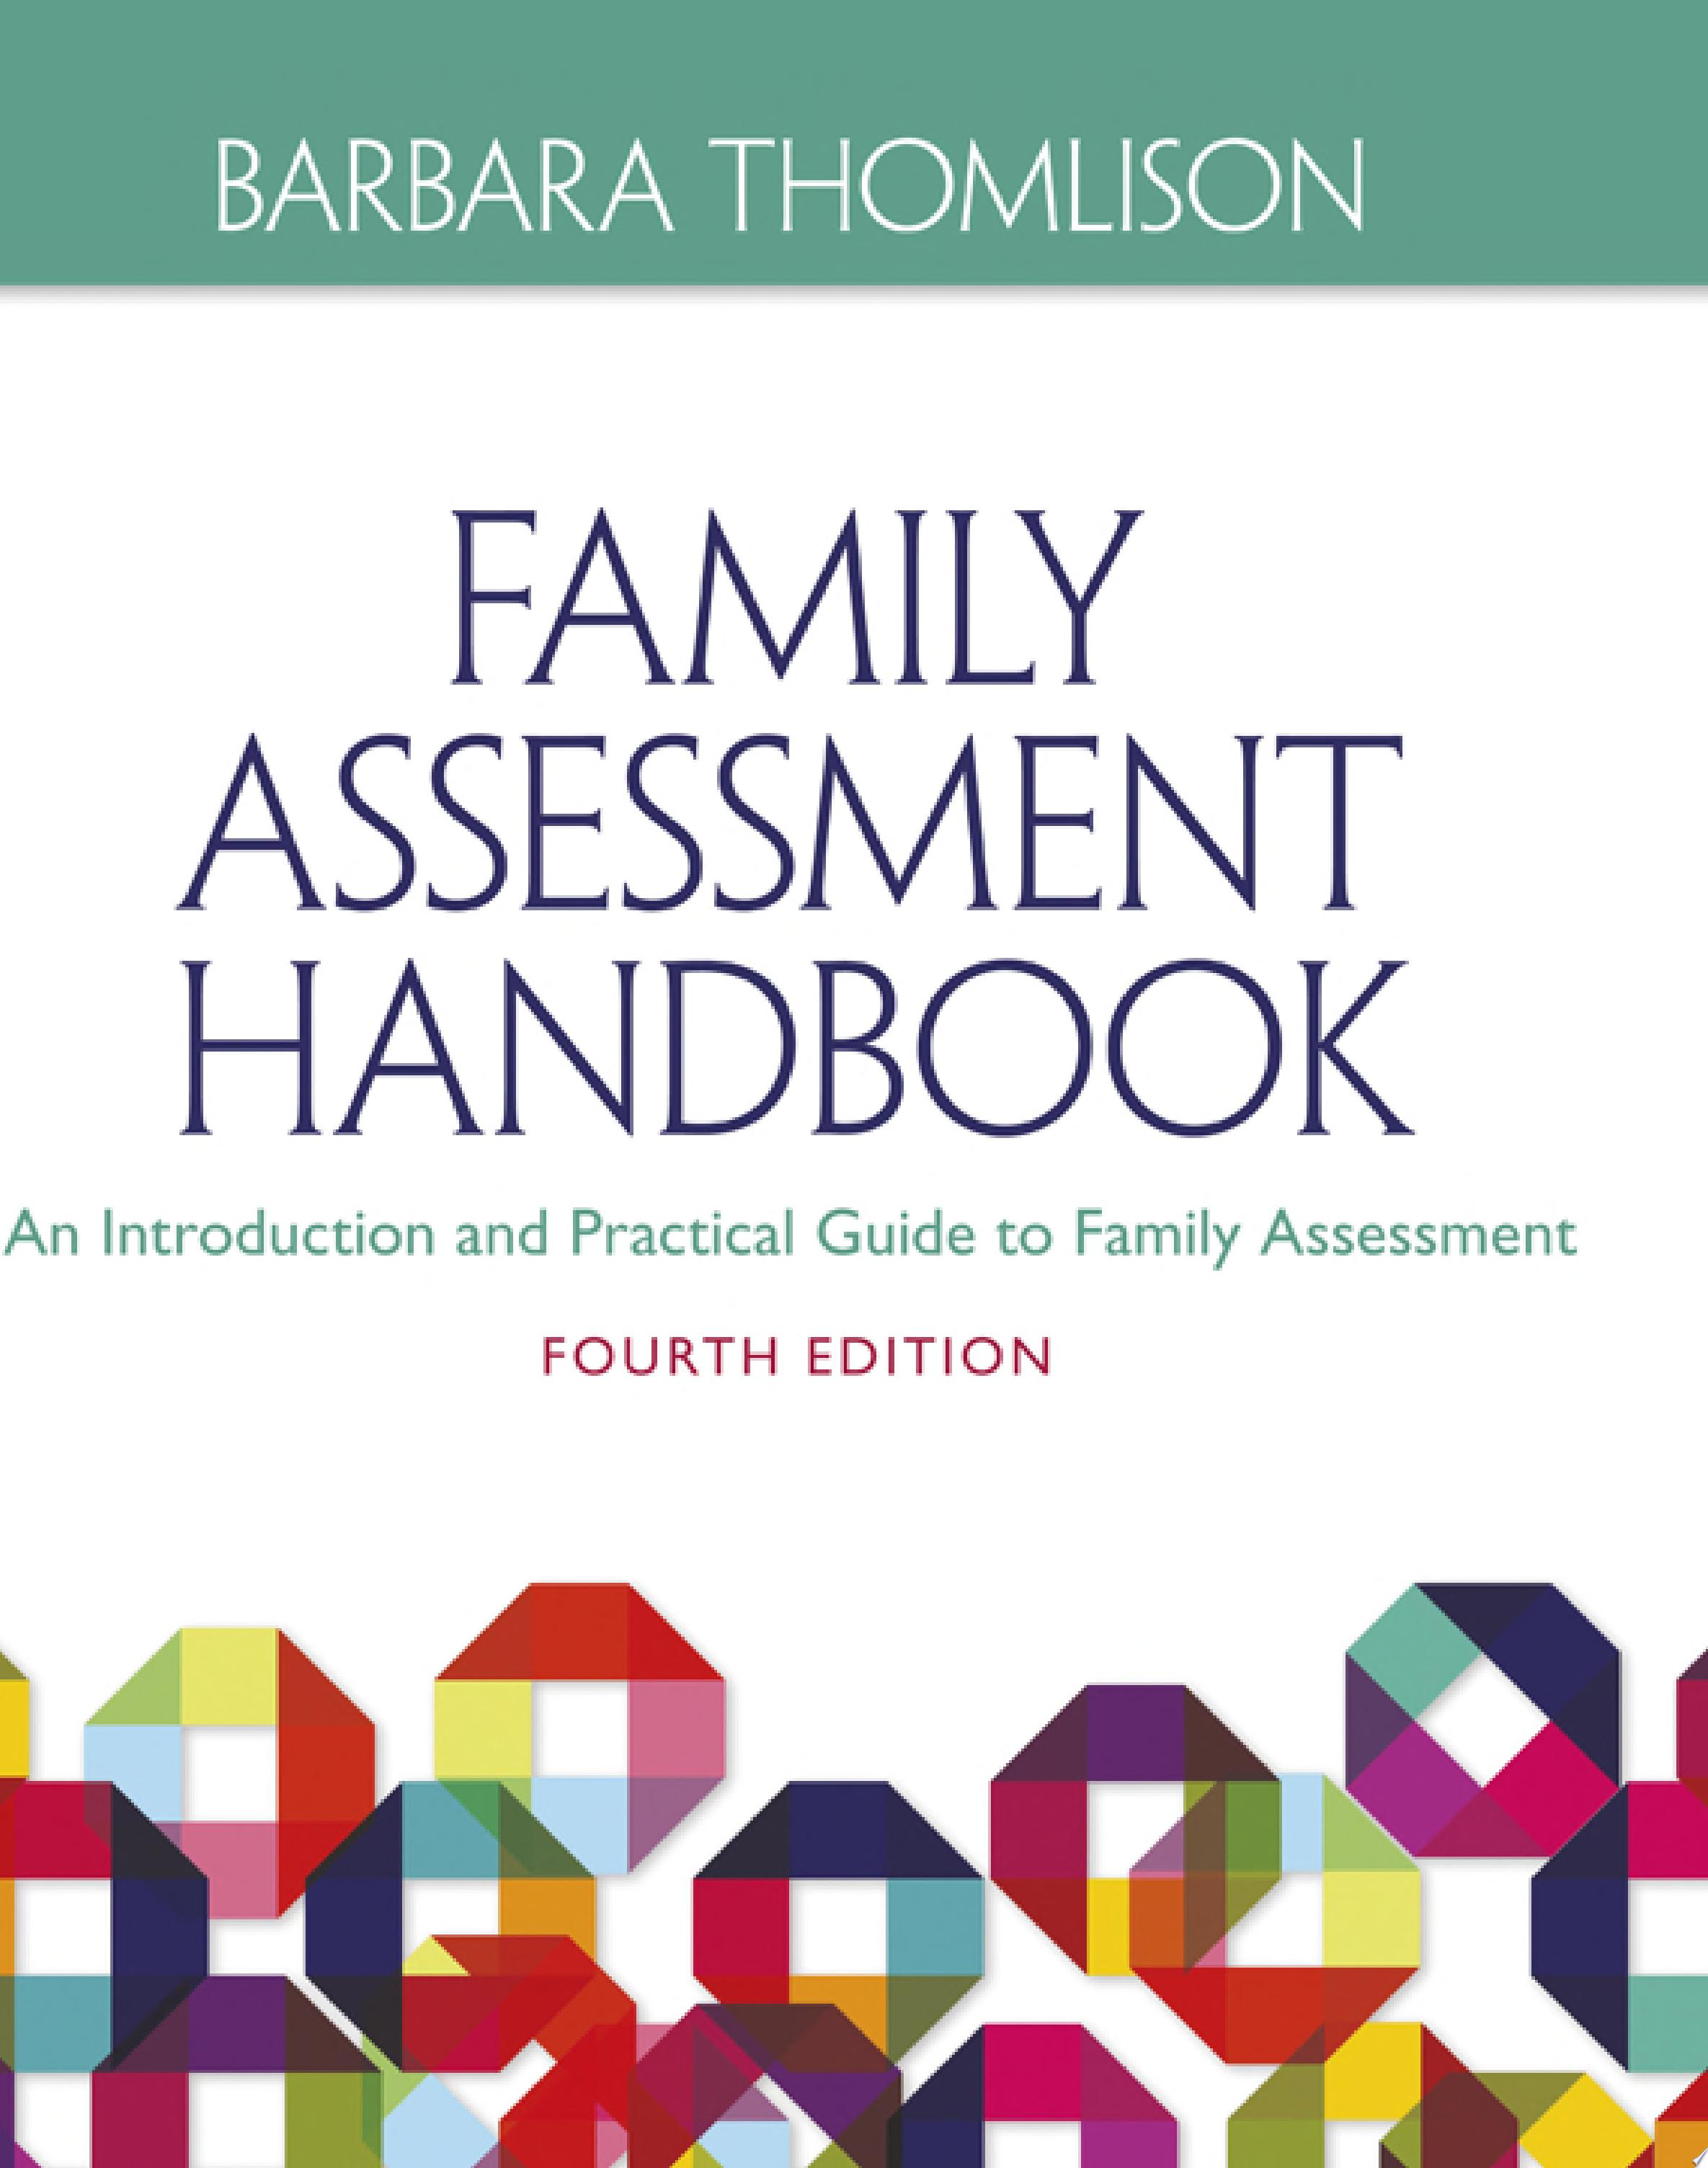 Family Assessment Handbook  An Introductory Practice Guide to Family Assessment